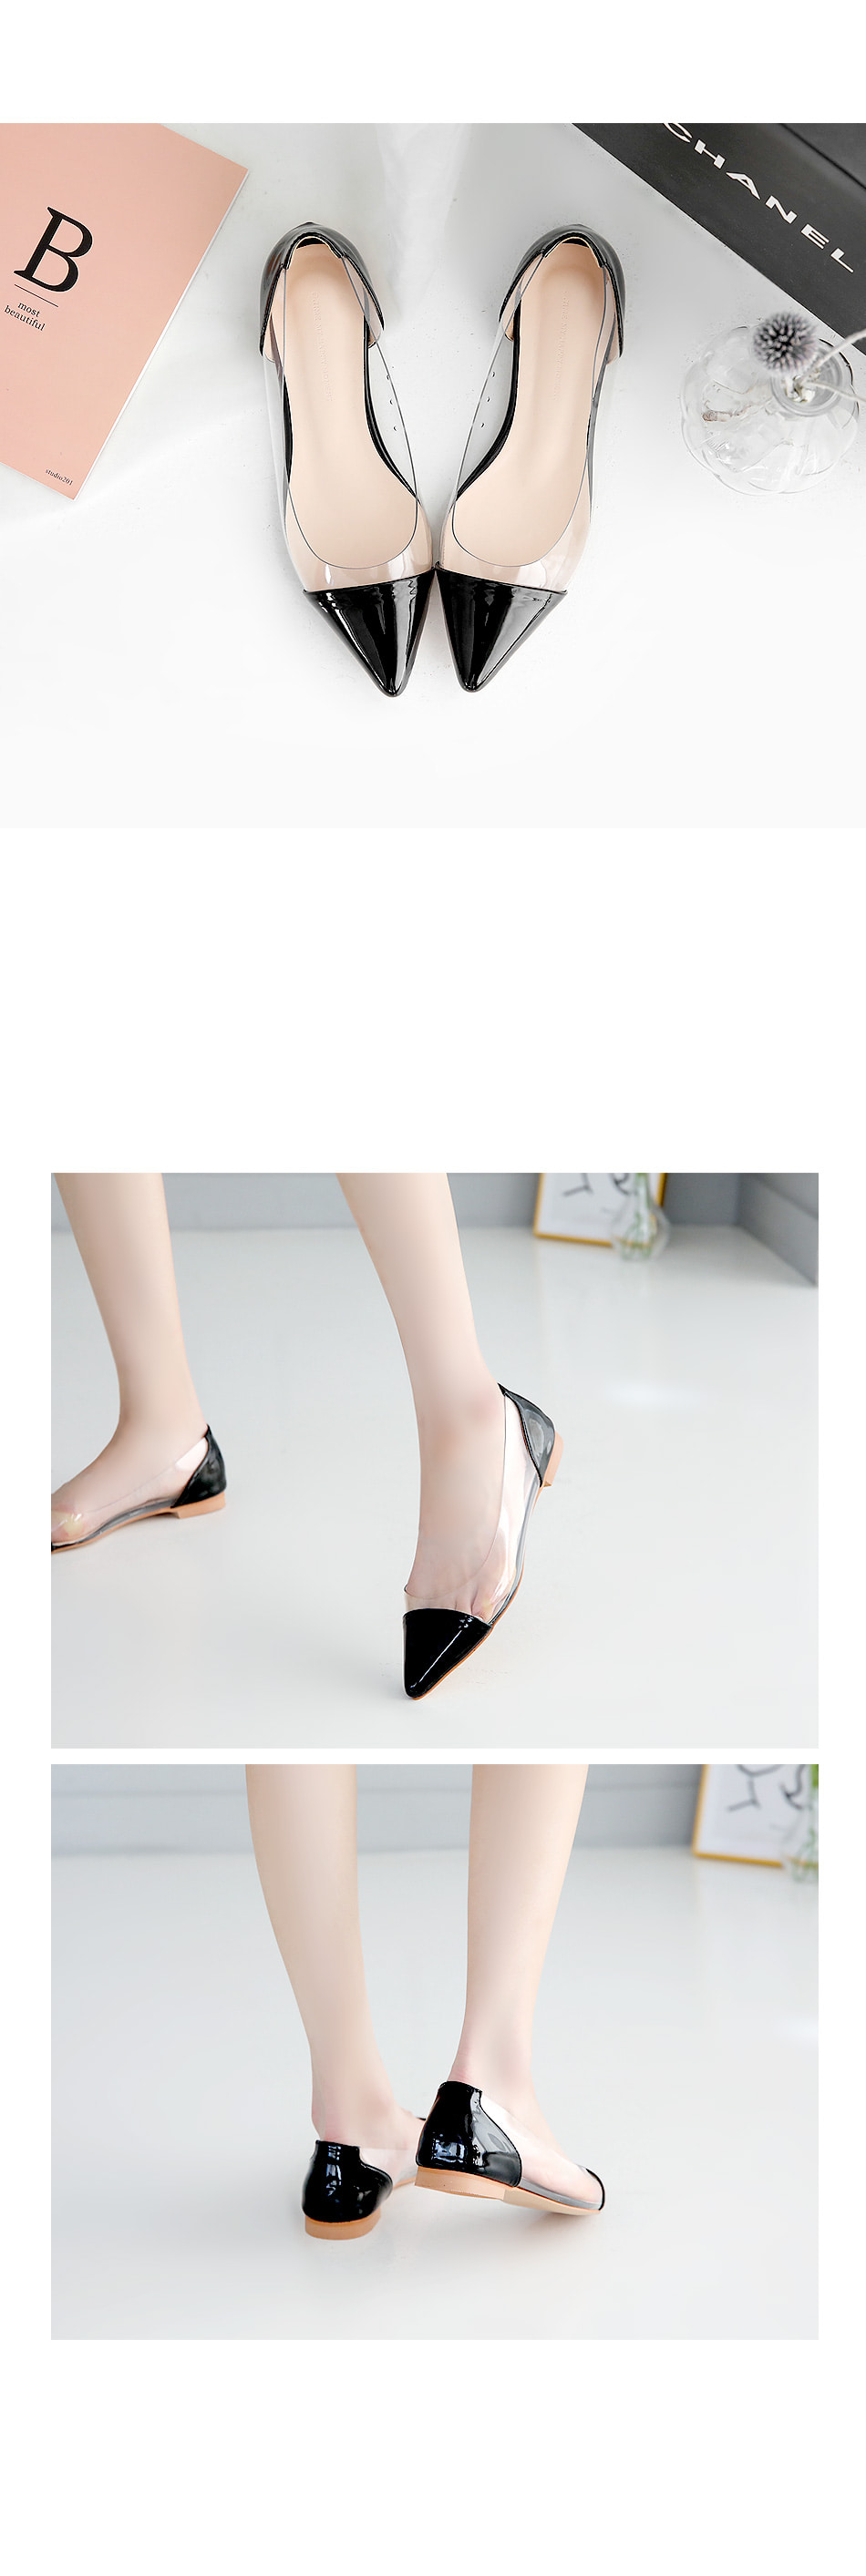 Roim PVC Flat Shoes 1.5cm